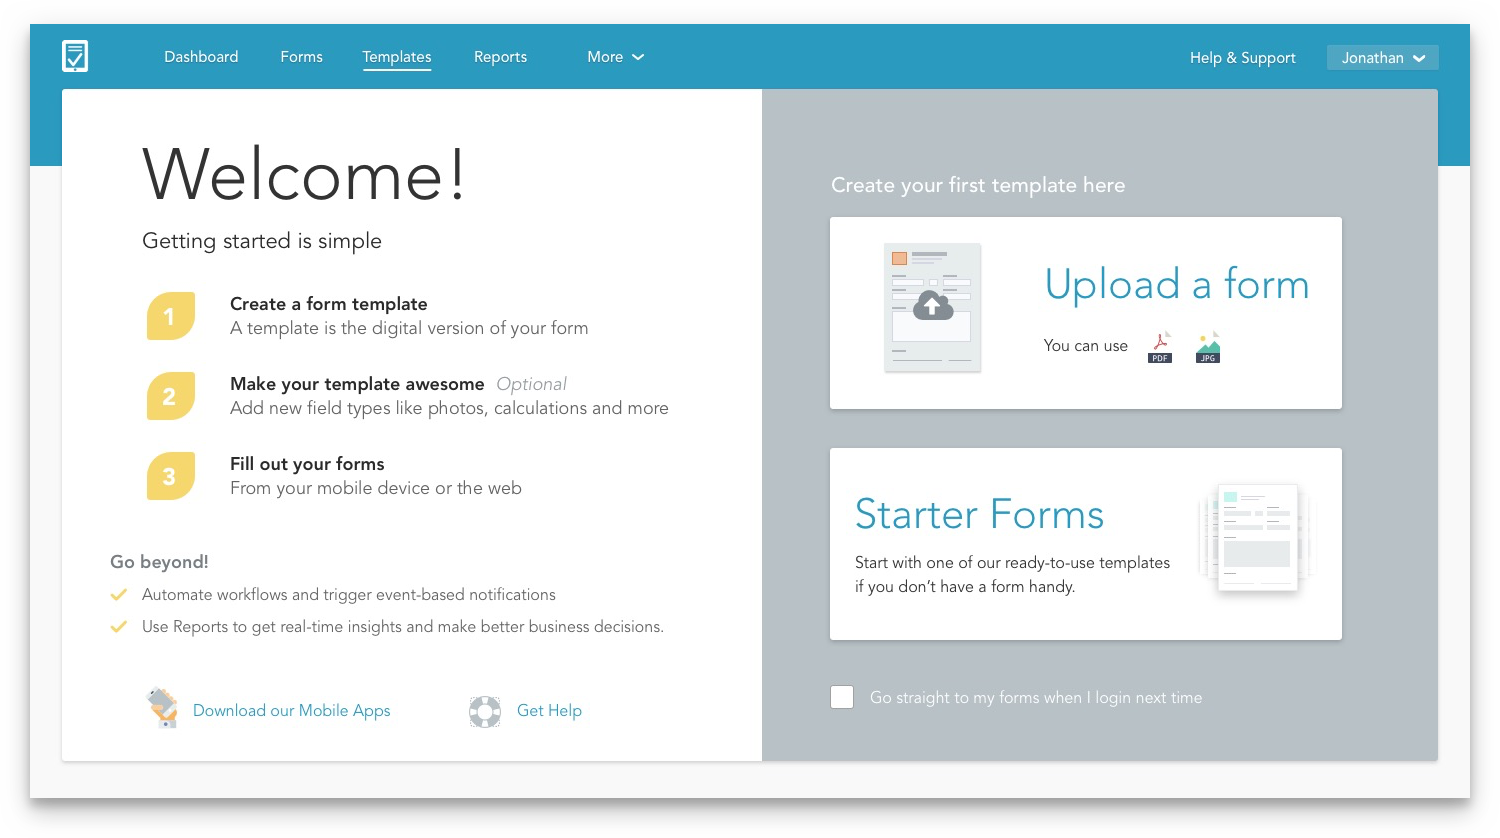 GoFormz new Welcome page inside the web app